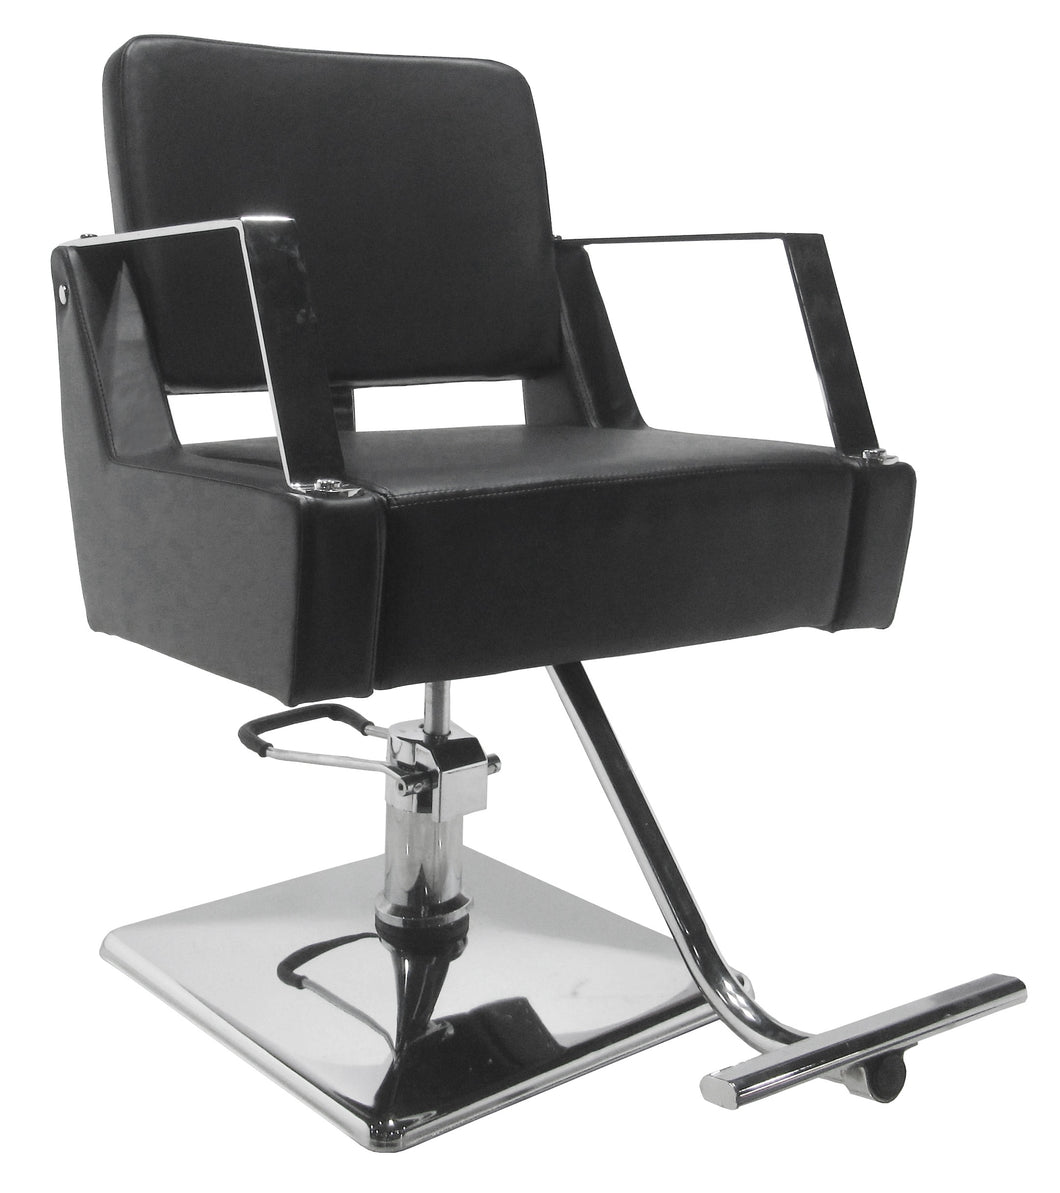 Model 557 Styling Chair With Hydraulic Height Adjustment